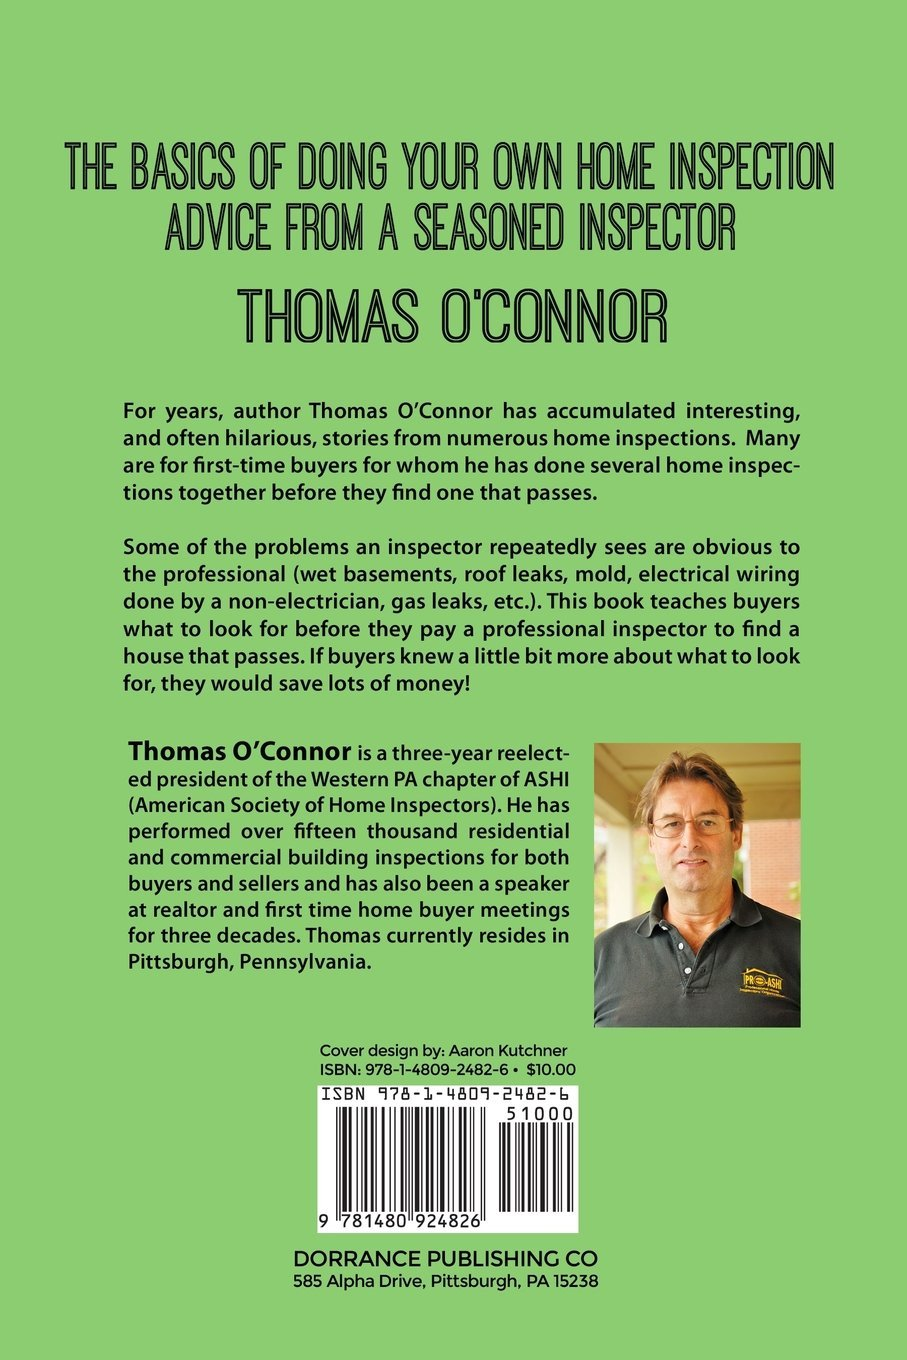 The Basics Of Doing Your Own Home Inspection Advice From A Seasoned Electrical Wiring Book Inspector Thomas Oconnor 9781480924826 Books